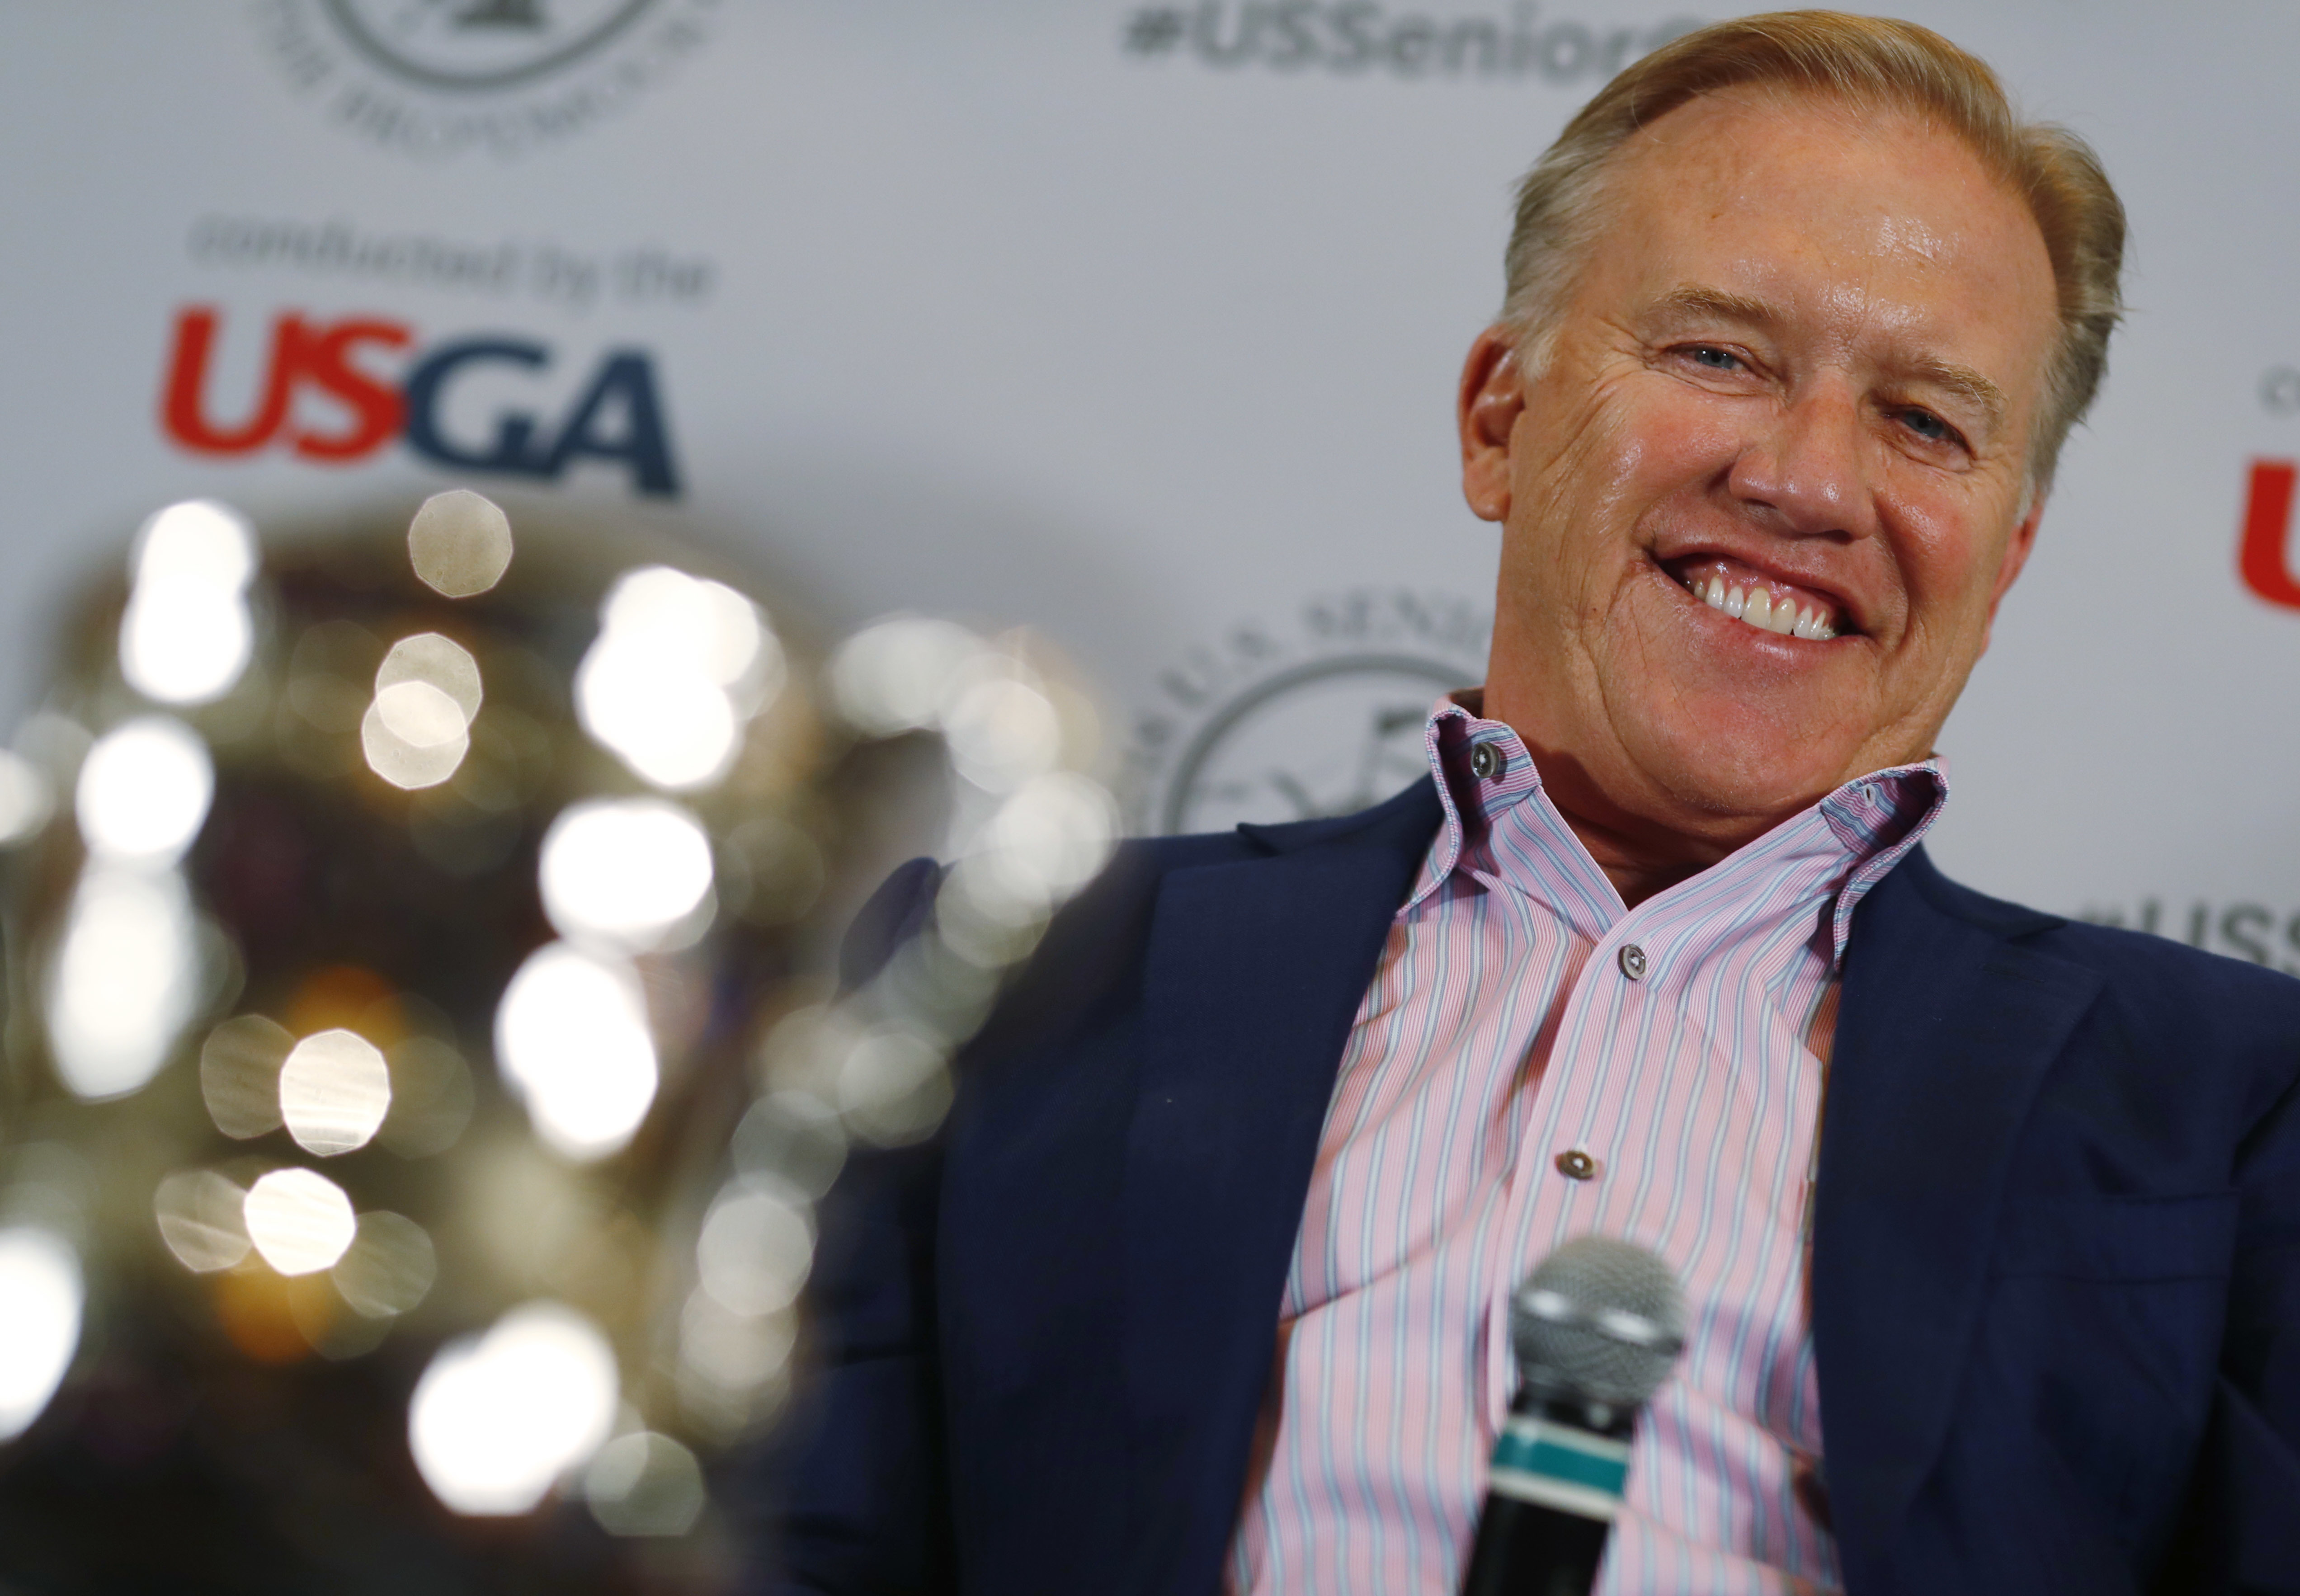 Denver Broncos general manager John Elway jokes with reporters after he was introduced as the honorary chairman of the 39th U.S. Senior Open, which will be held at the Broadmoor Golf Club in Colorado Springs, Colo., during a news conference at one of the